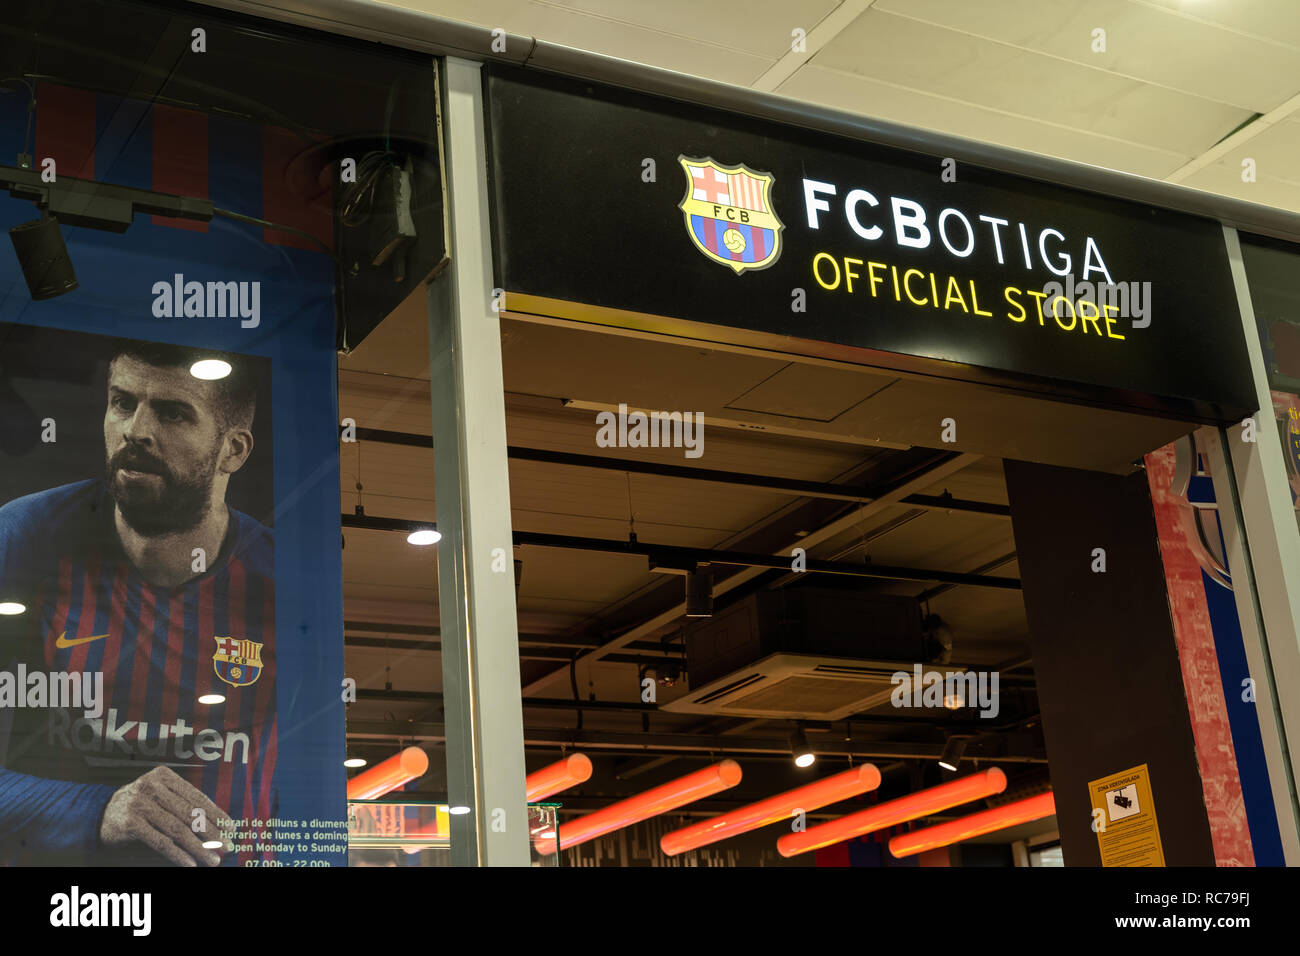 entrance to the fc botiga store of the fc barcelona footbal team with a poster by Gerard Pique in the shop window. Logo fc barcelona, Spain - Stock Image